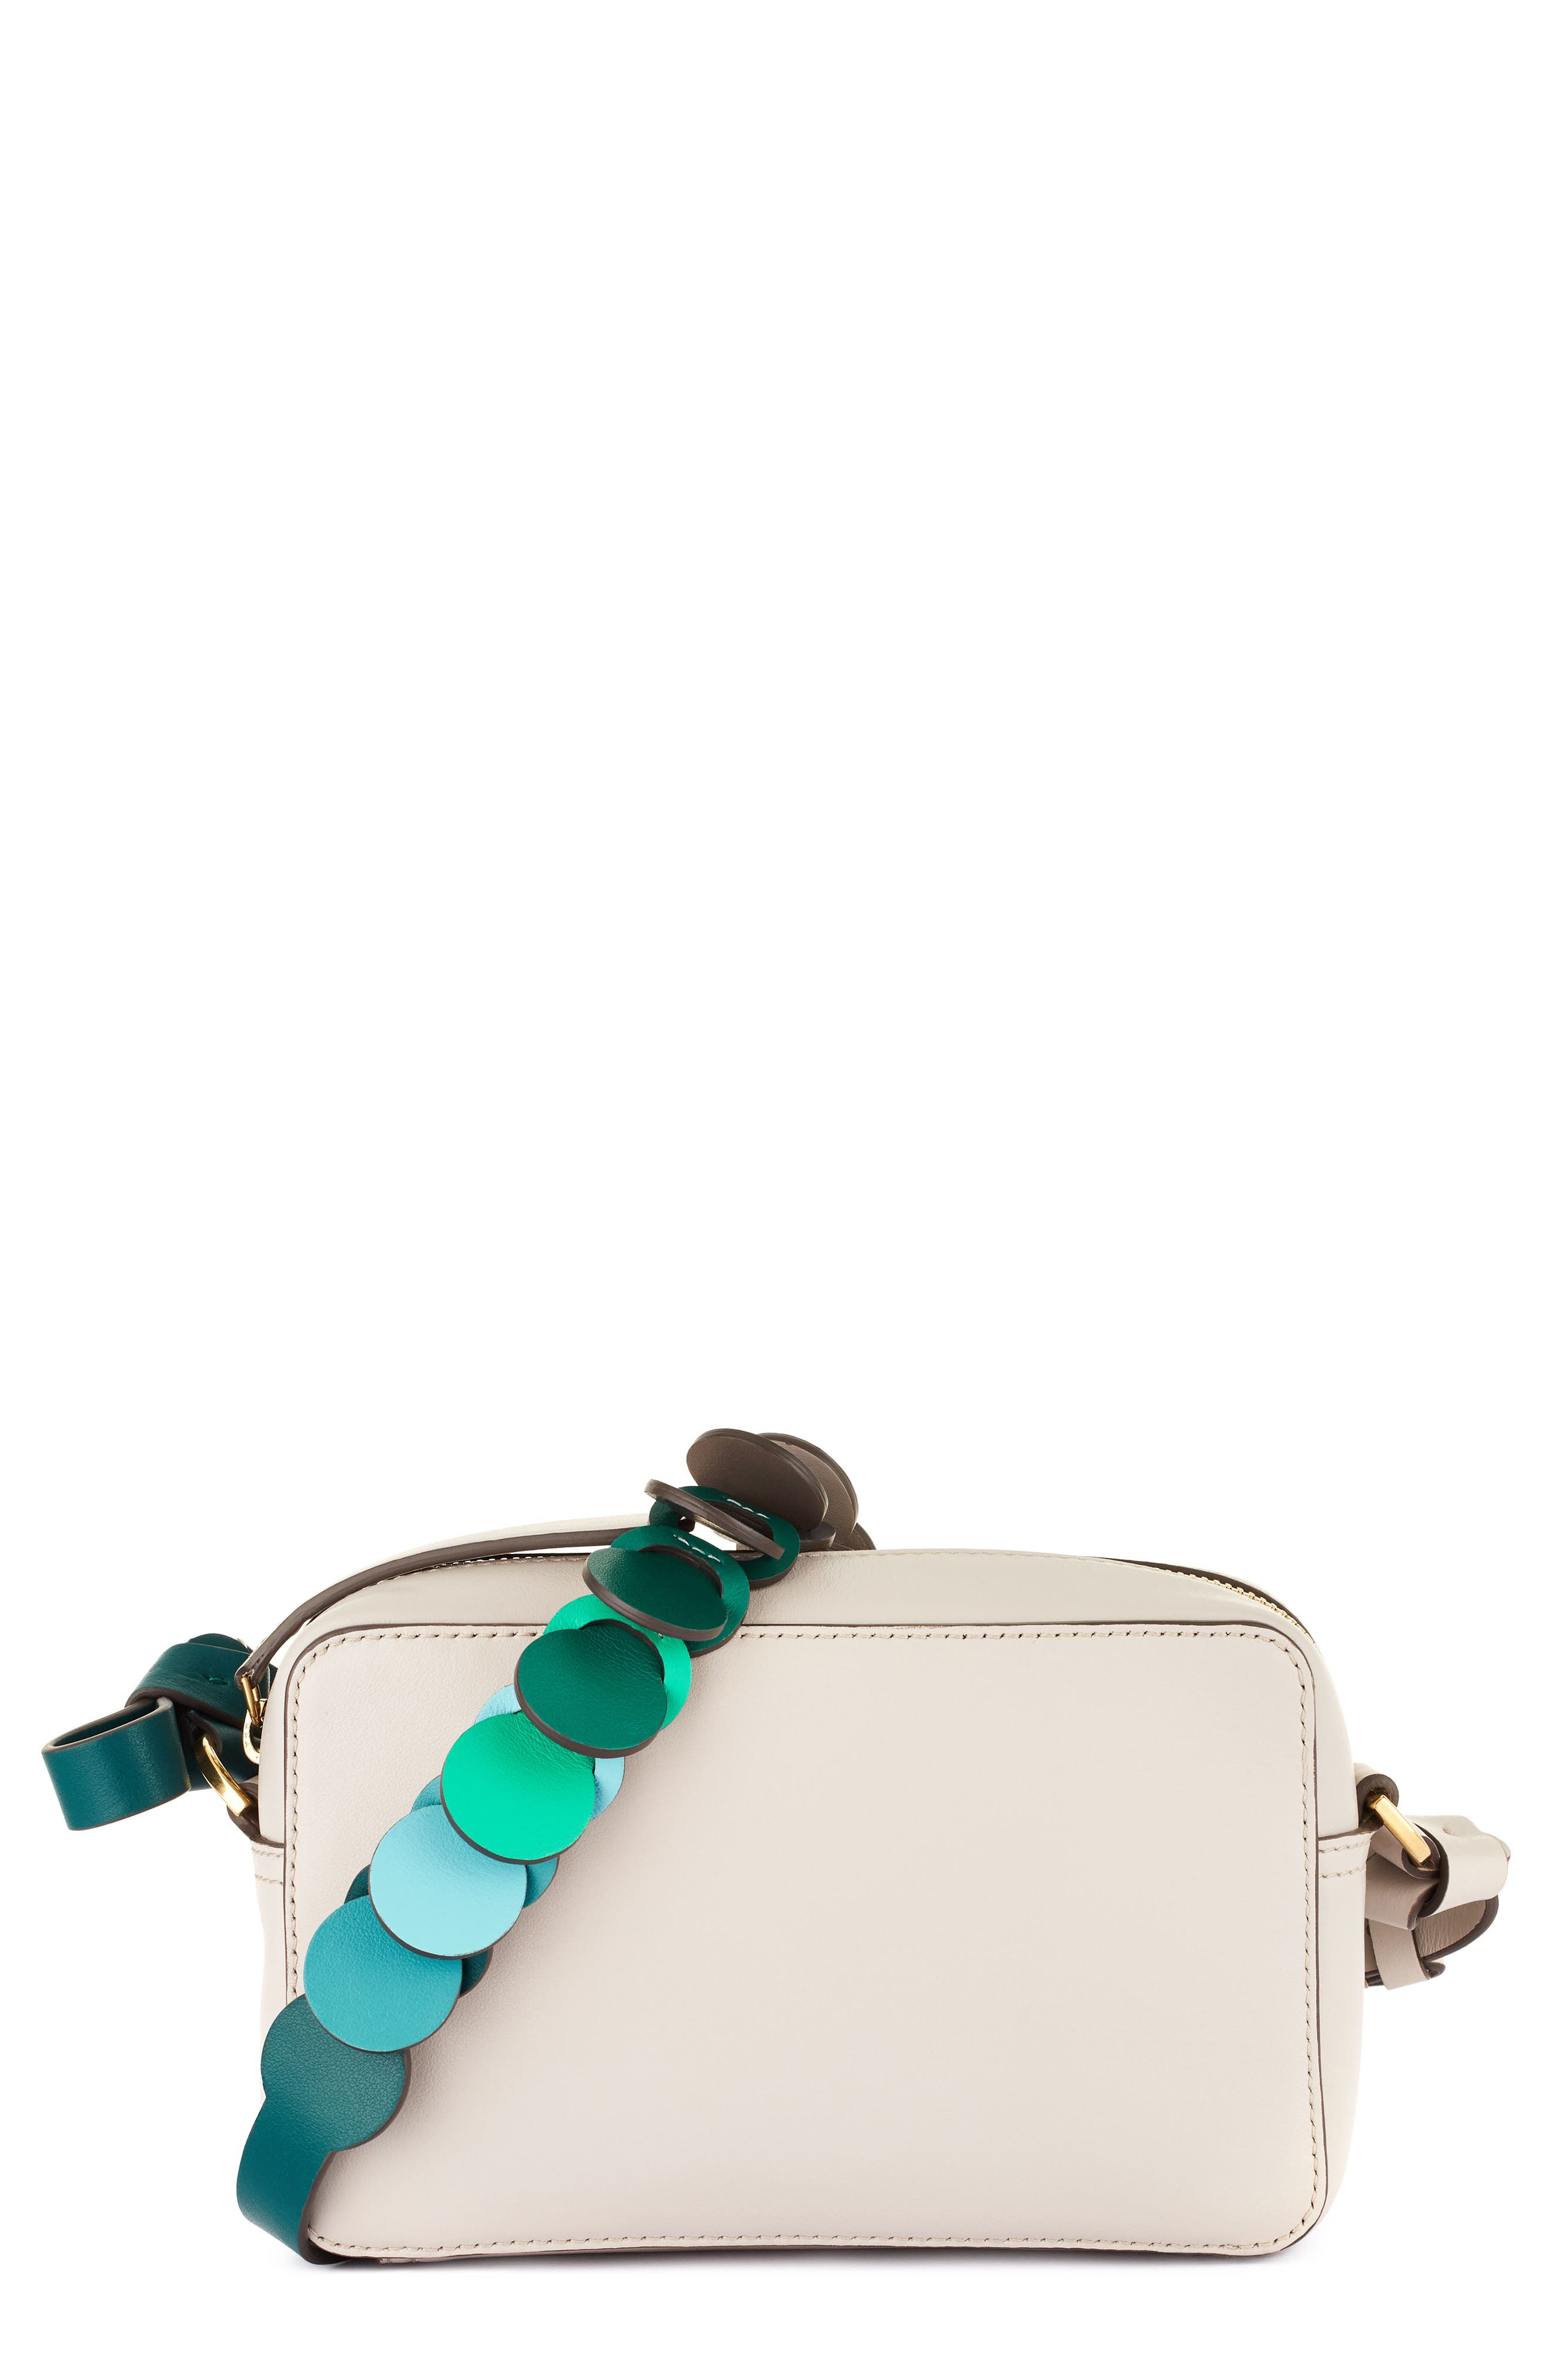 Camera Leather Crossbody With Link Strap,                         Main,                         color, 050